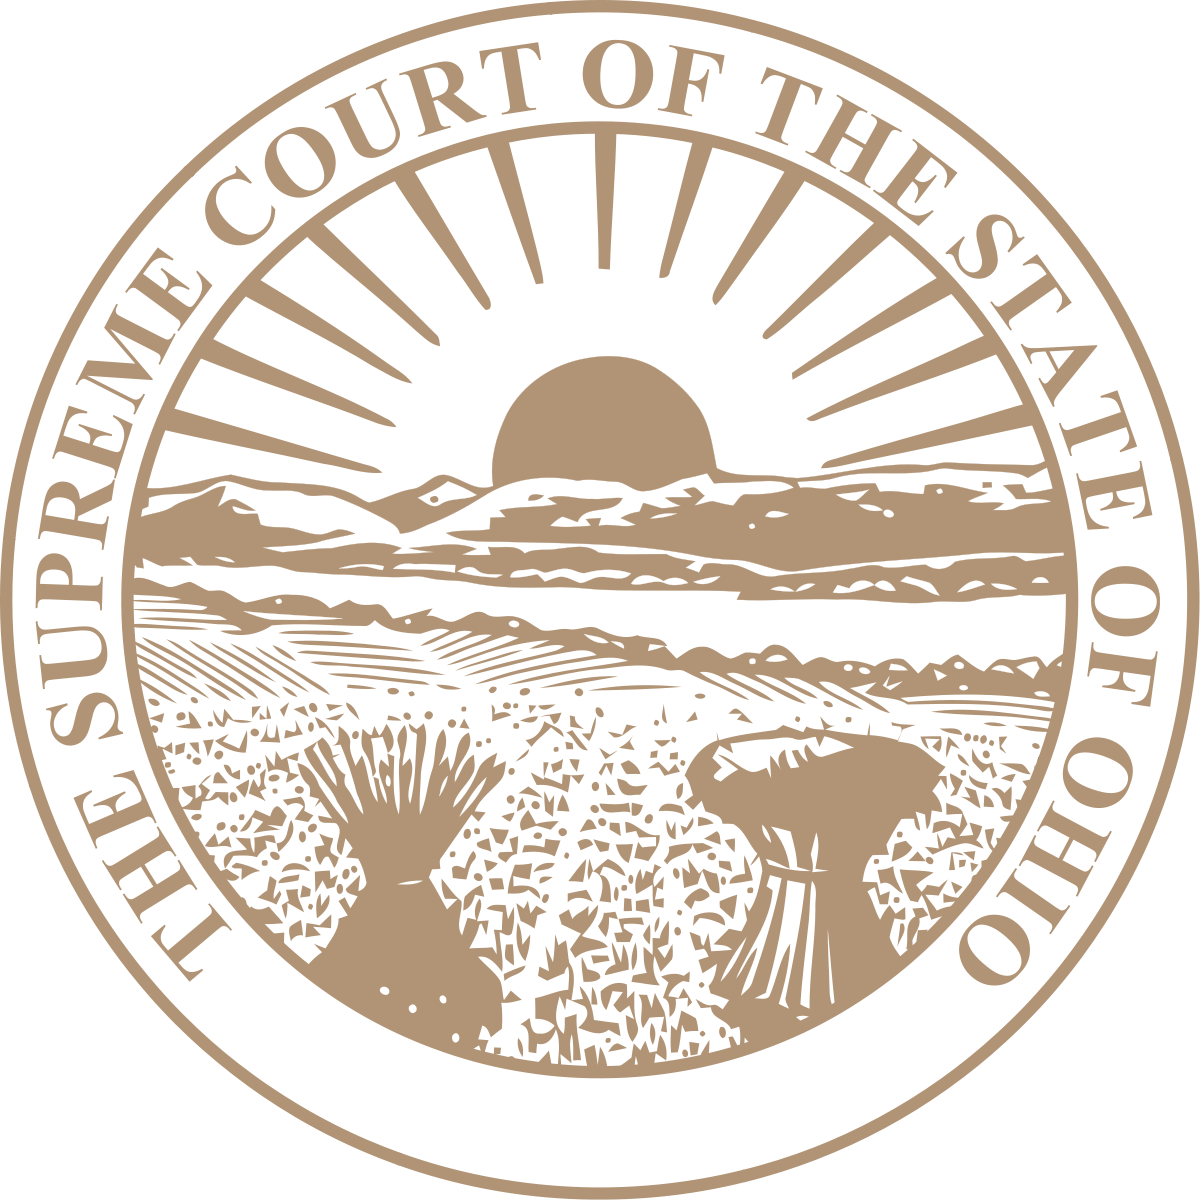 Government clipart building supreme court. Edward avery judge wikipedia